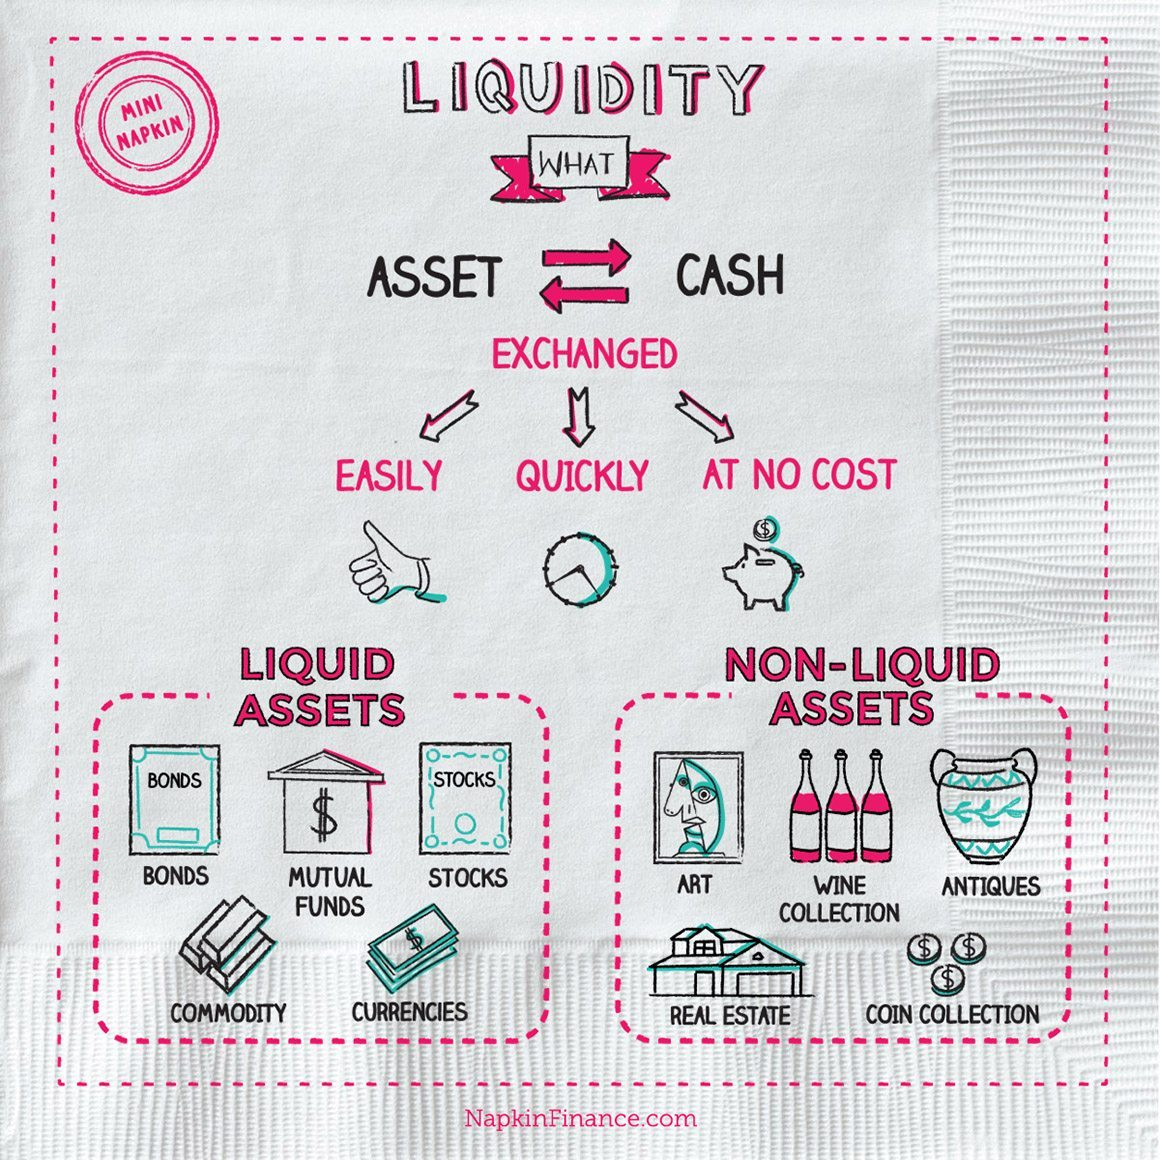 Financial Liquidity: What Is Liquidity, Liquidity Meaning, Liquidity Definition